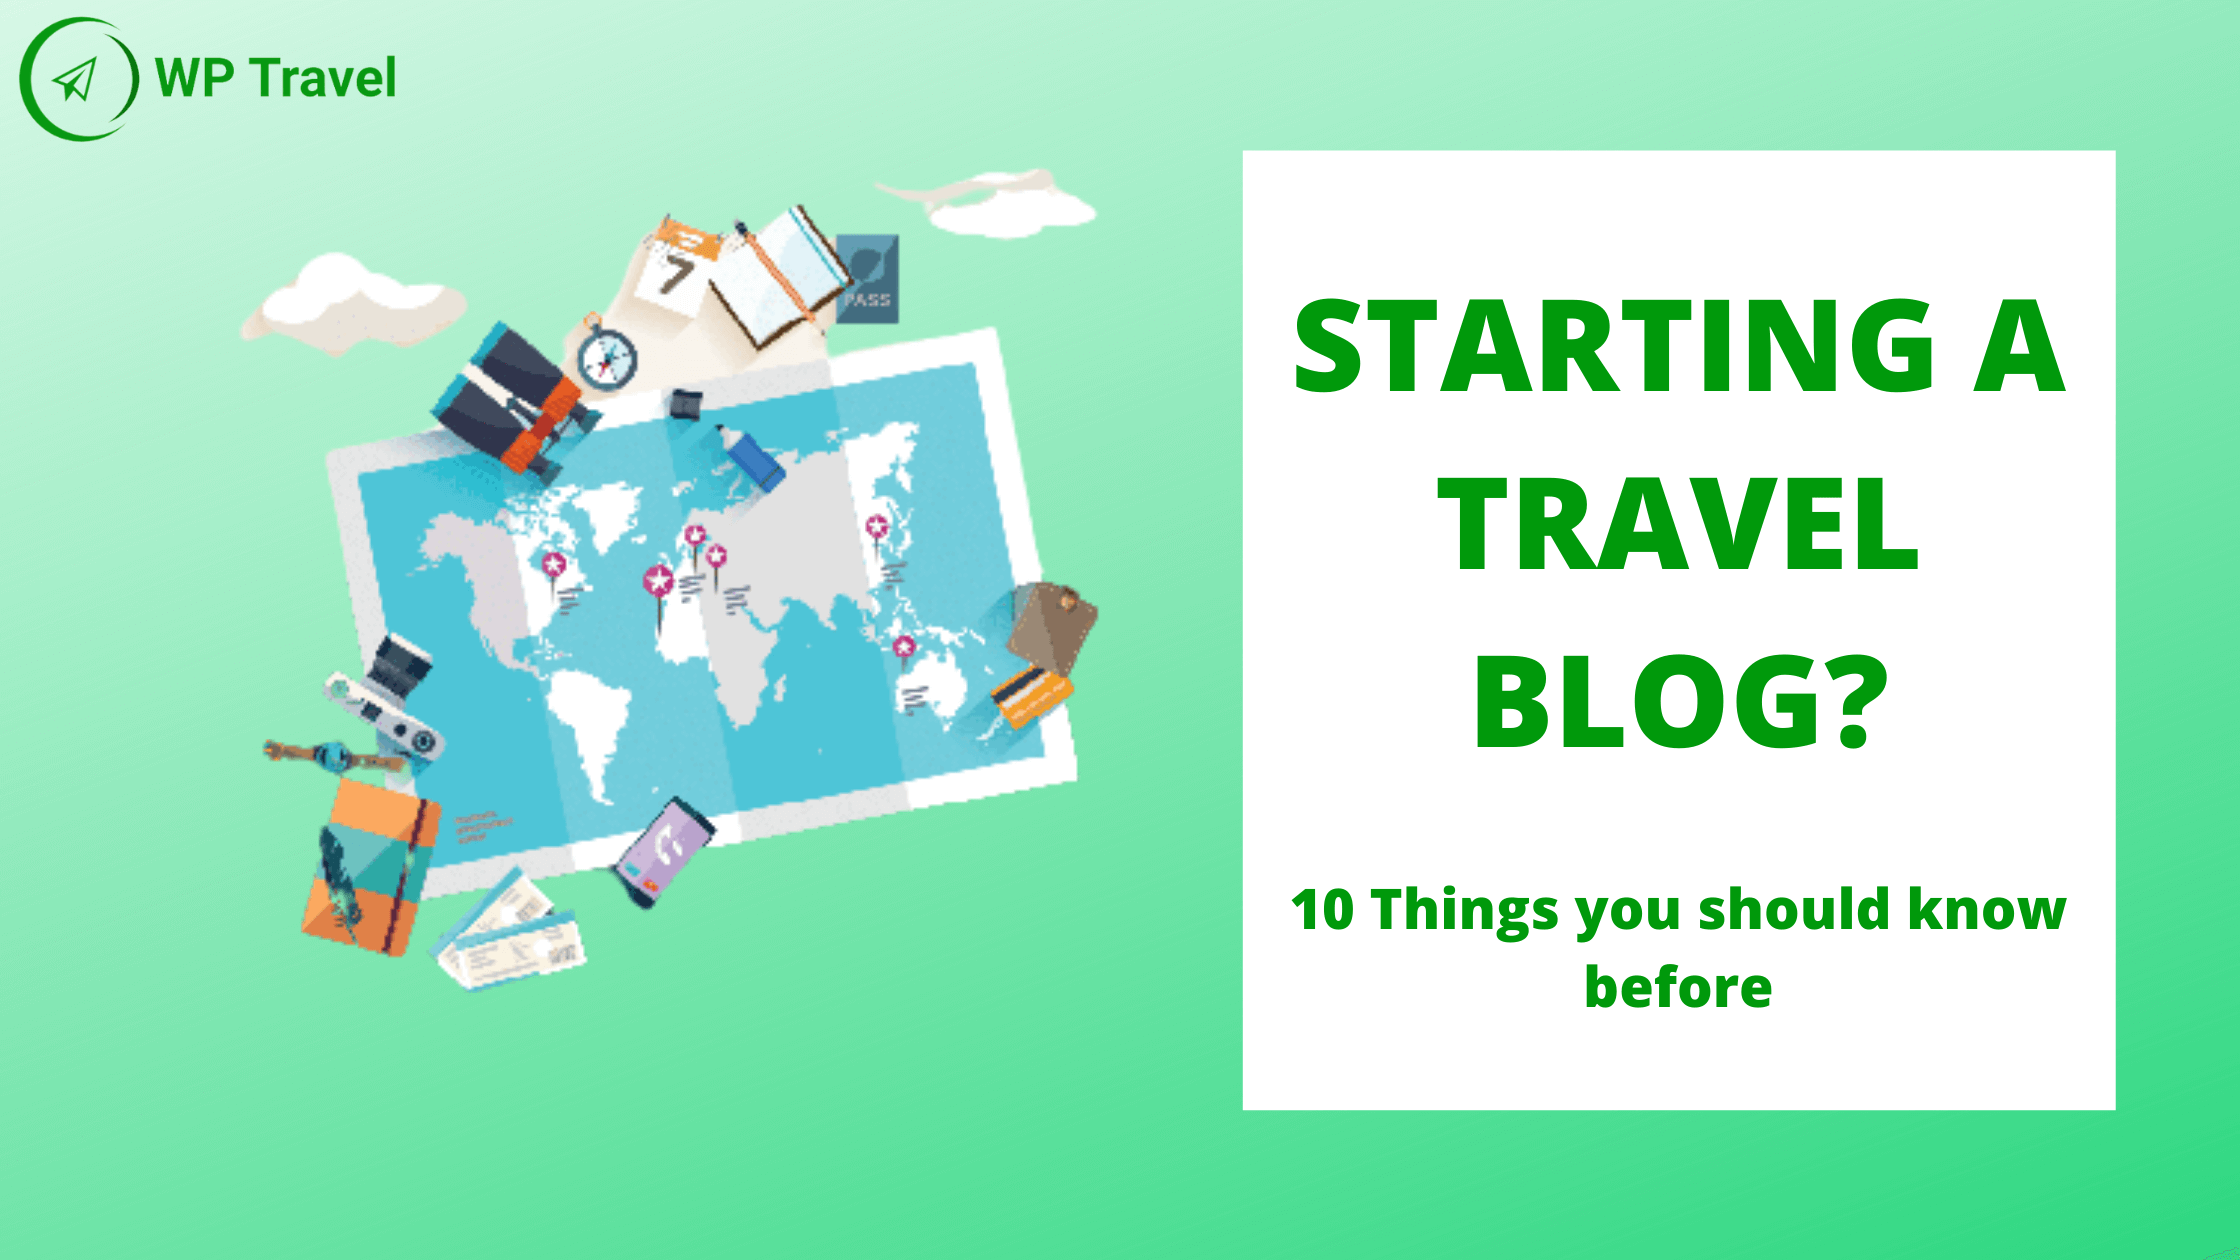 10 things you should know before starting a travel blog